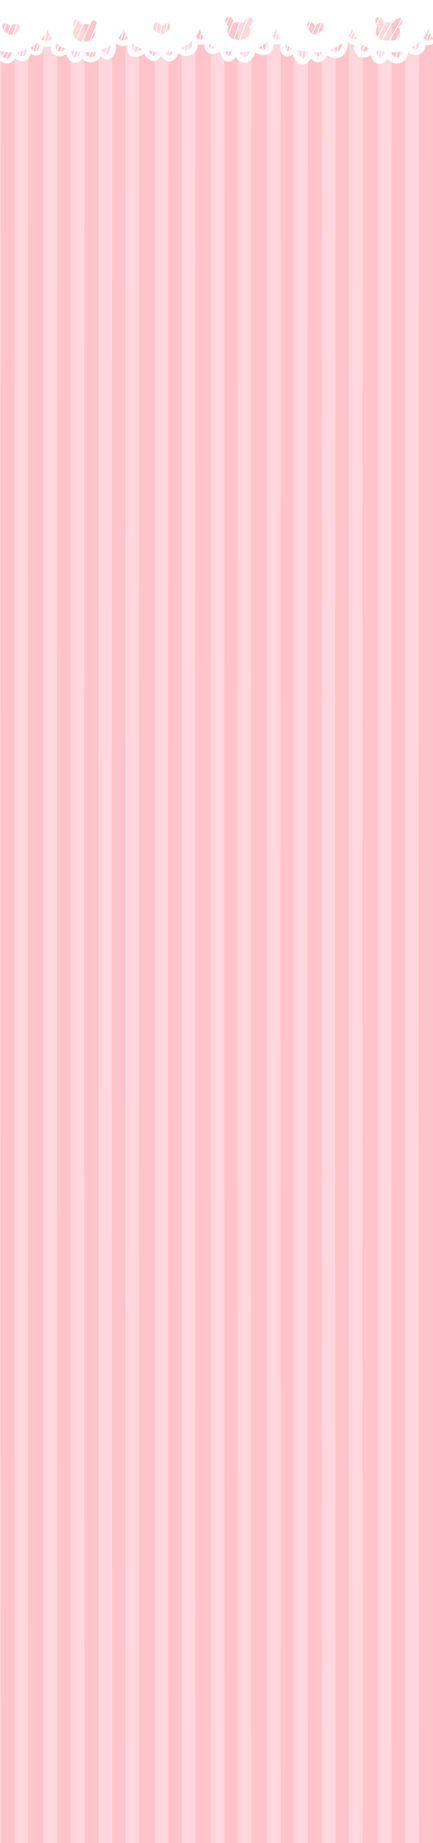 Bunnies And Hearts Pink [free to use] by pinkbunnii